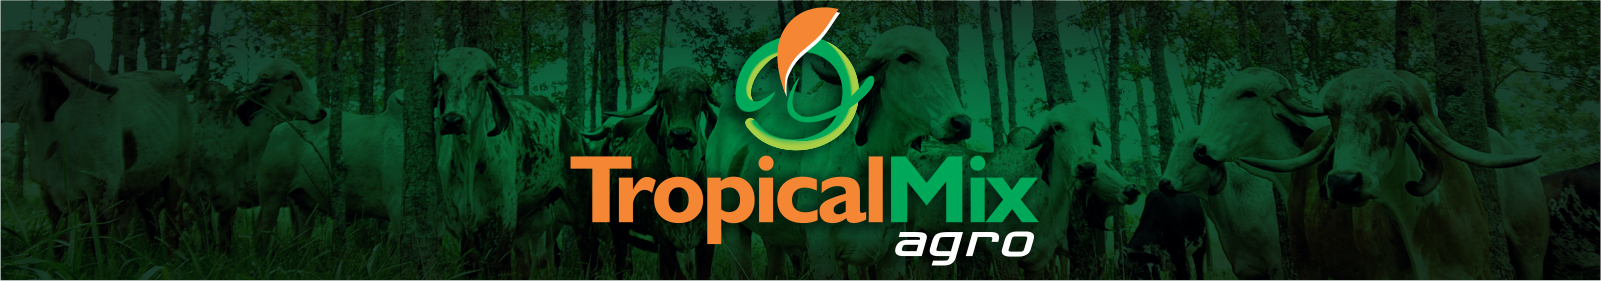 Tropical Mix Agro